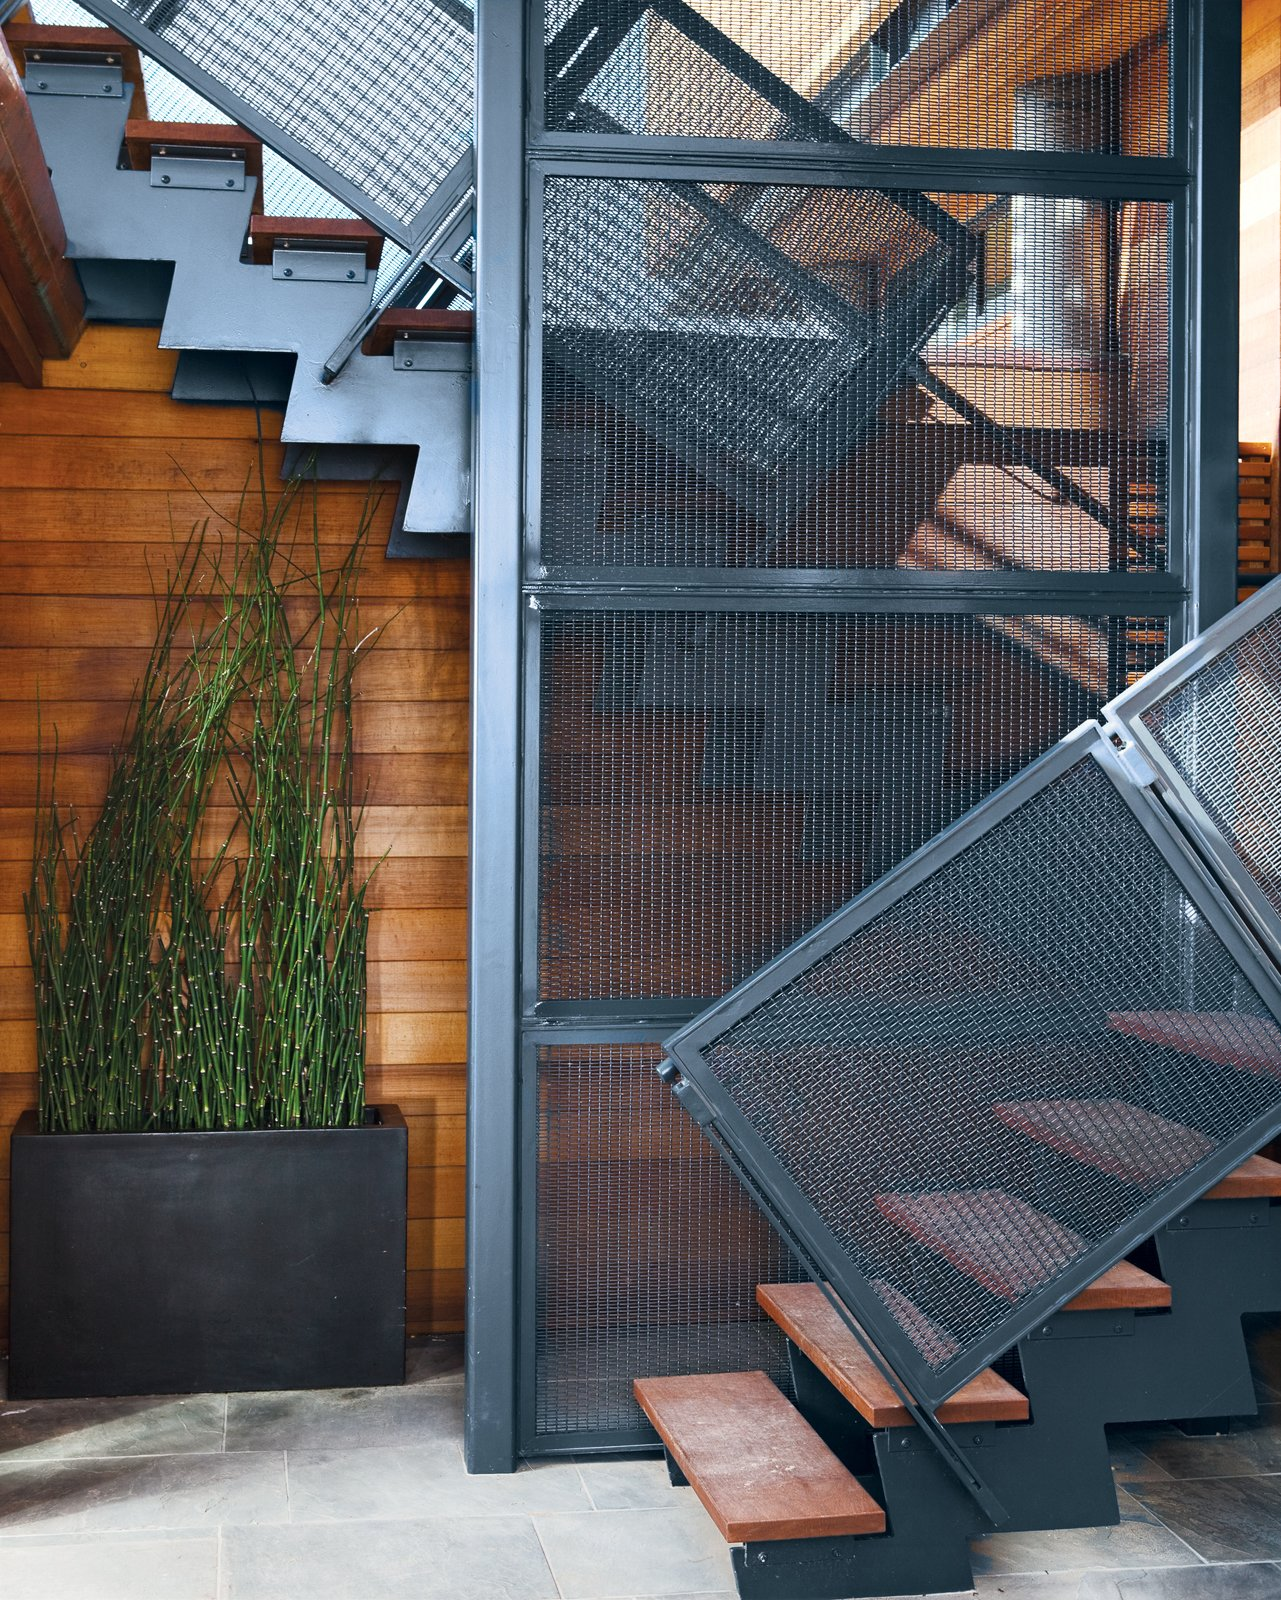 The steel stairwell that connects the garden-level patio with the new living space performs double duty as an anchor attached to the foundation. A Modern Coastal Home in Stinson Beach - Photo 8 of 10